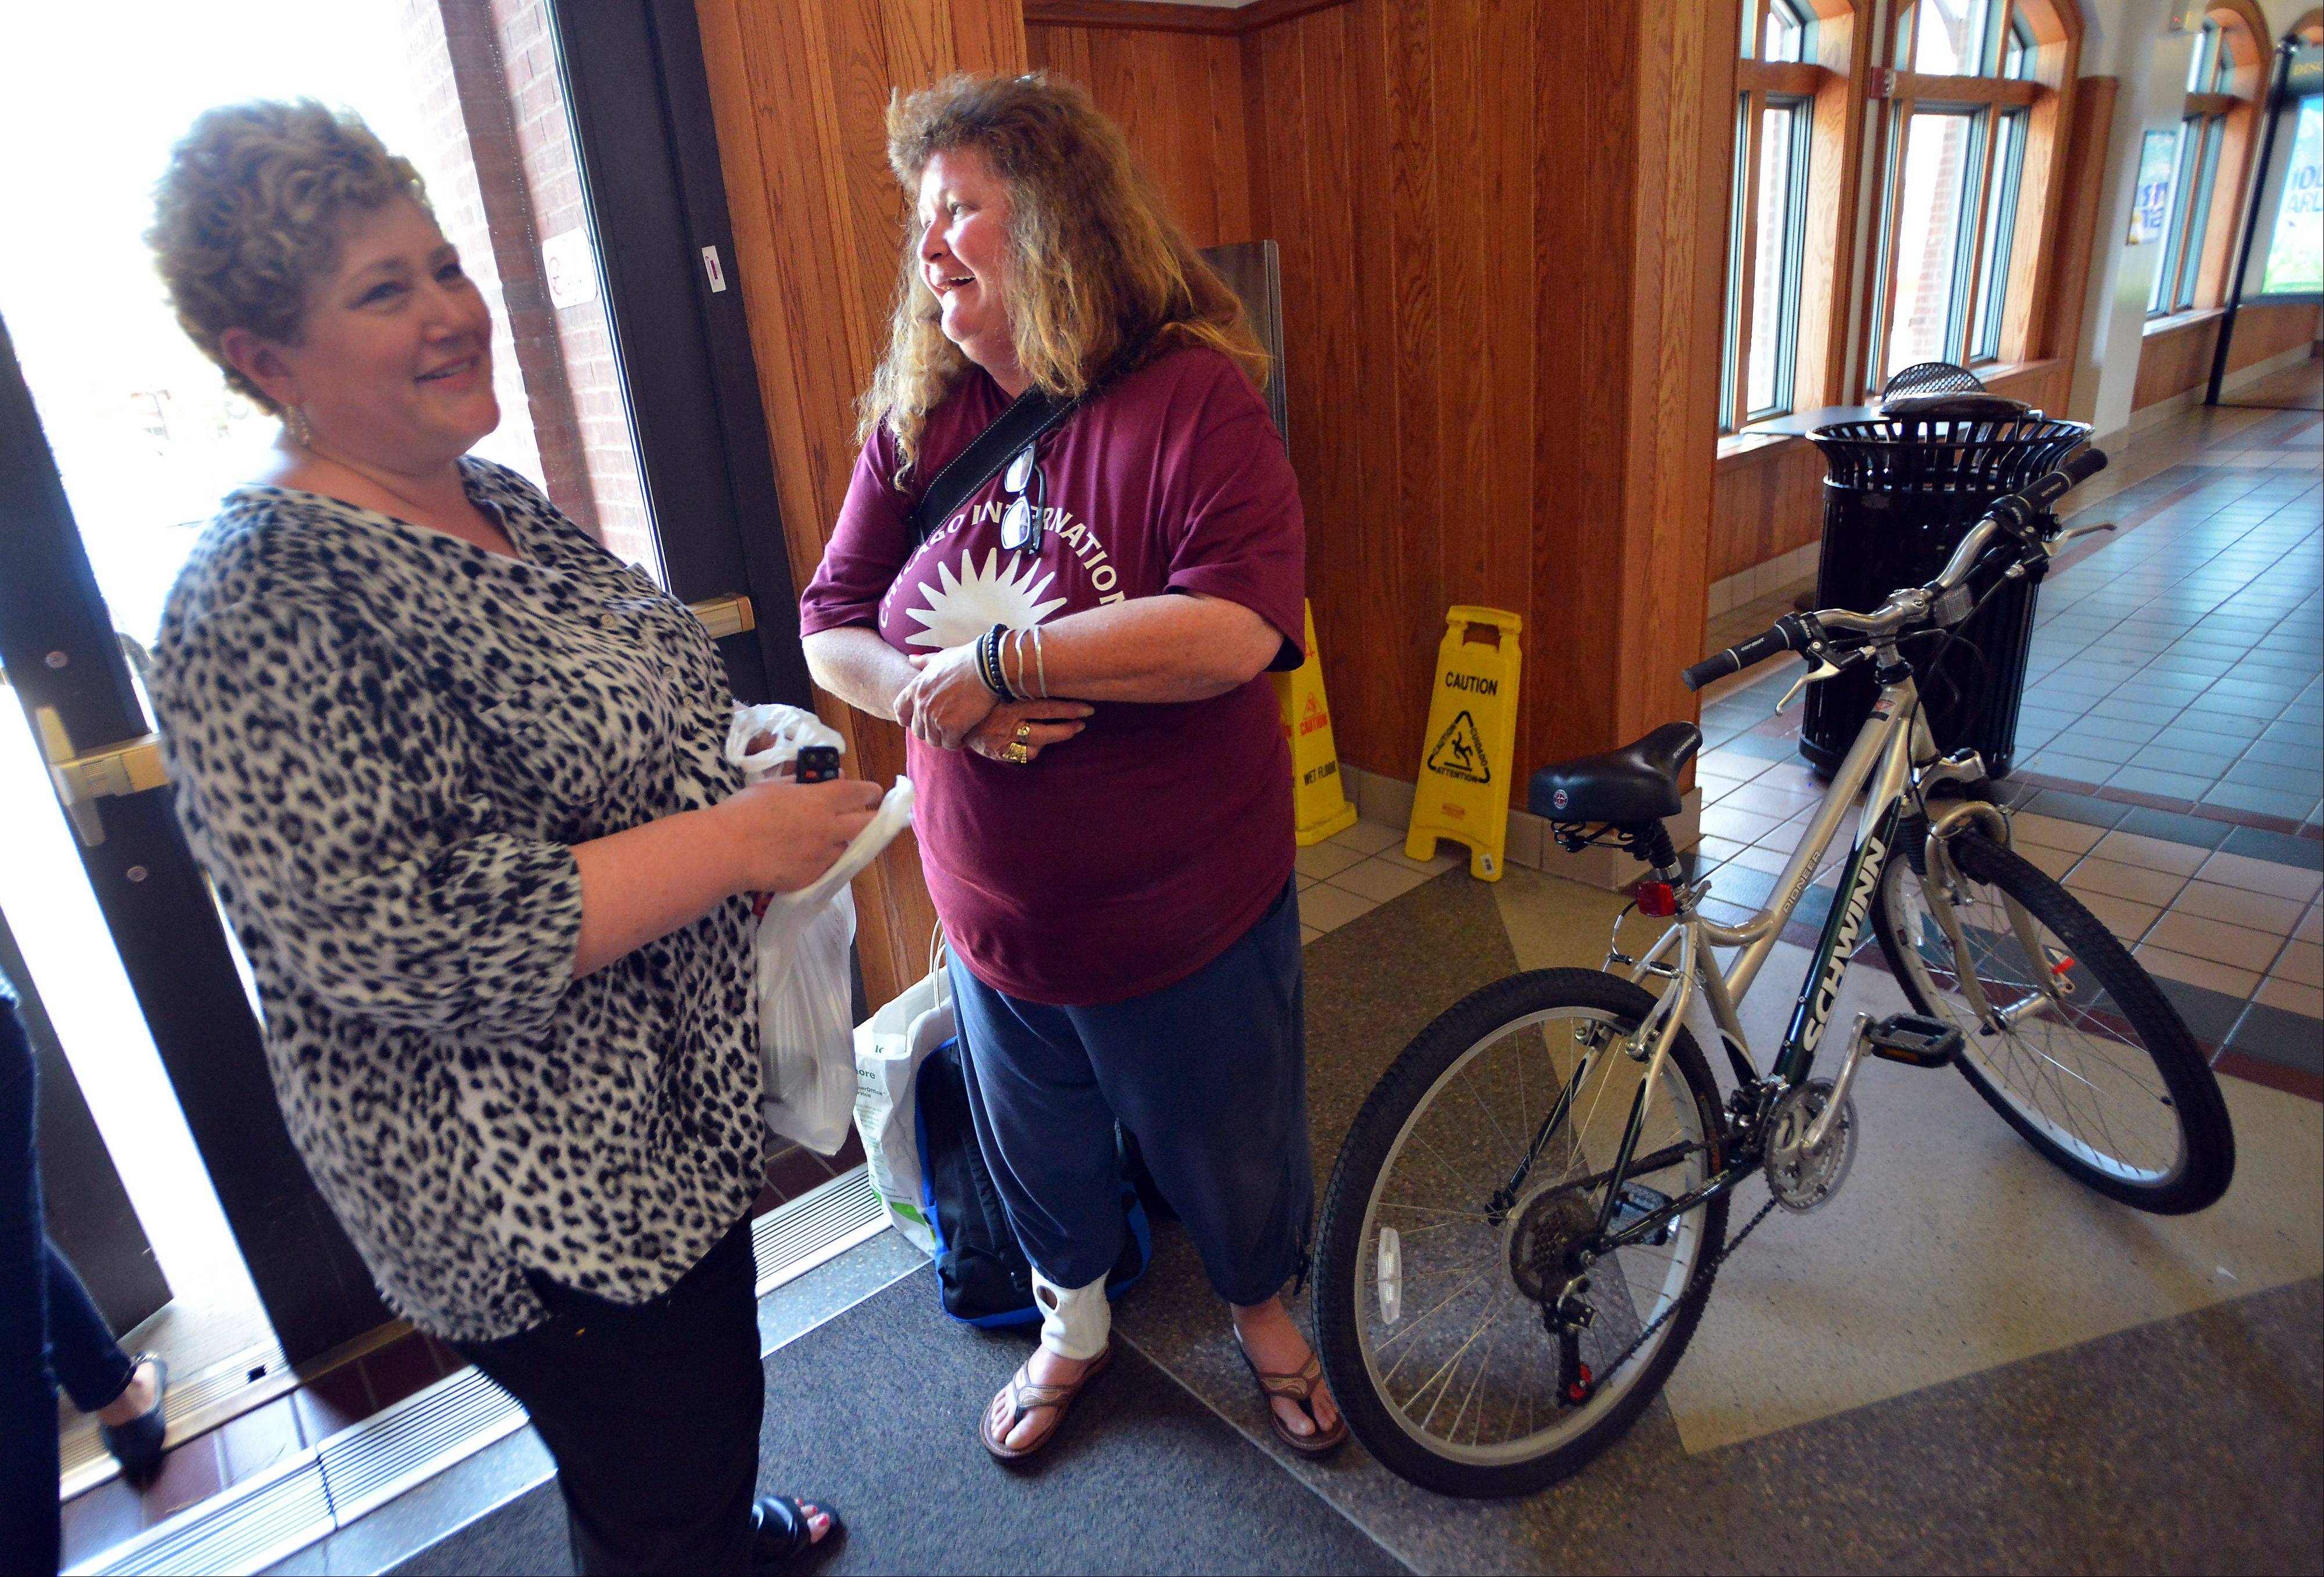 Homeless Arlington Hts. woman given new bike, other help